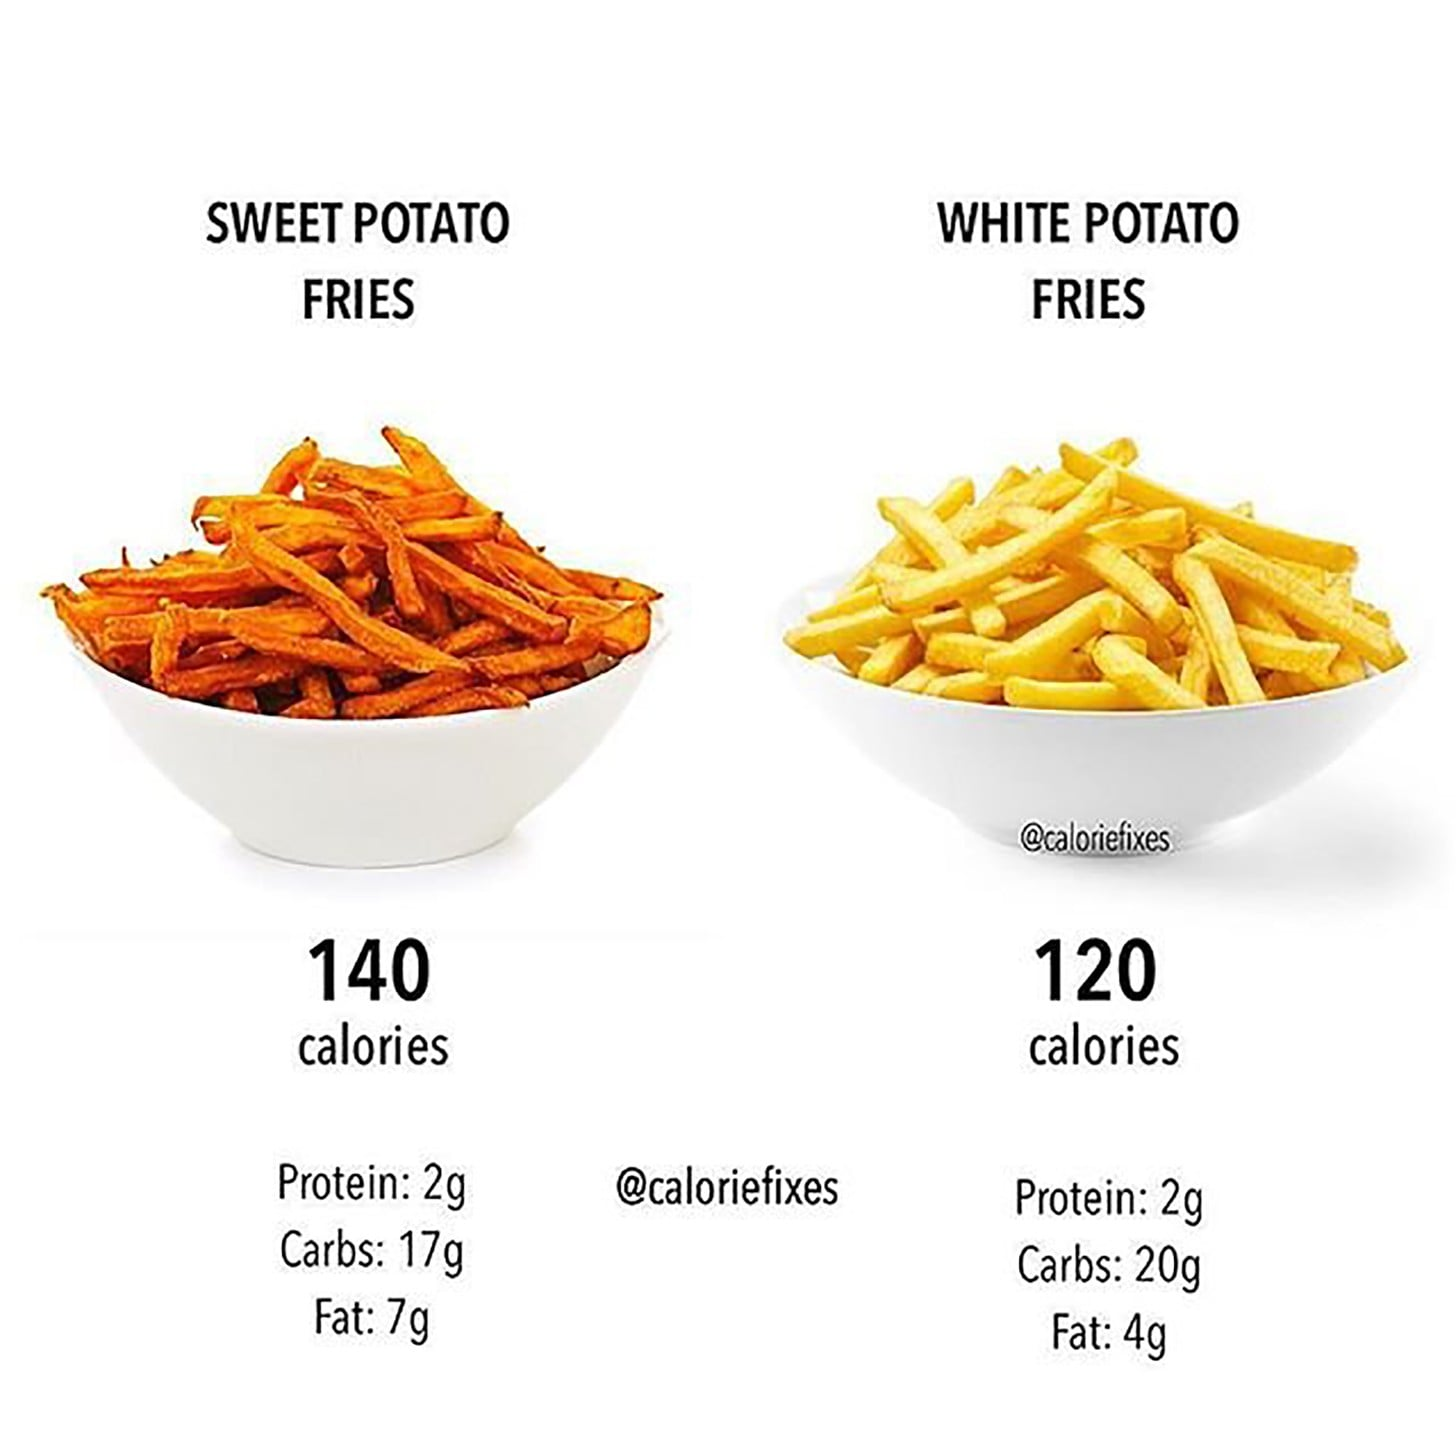 Are Sweet Potato Fries Healthier Than Regular Fries